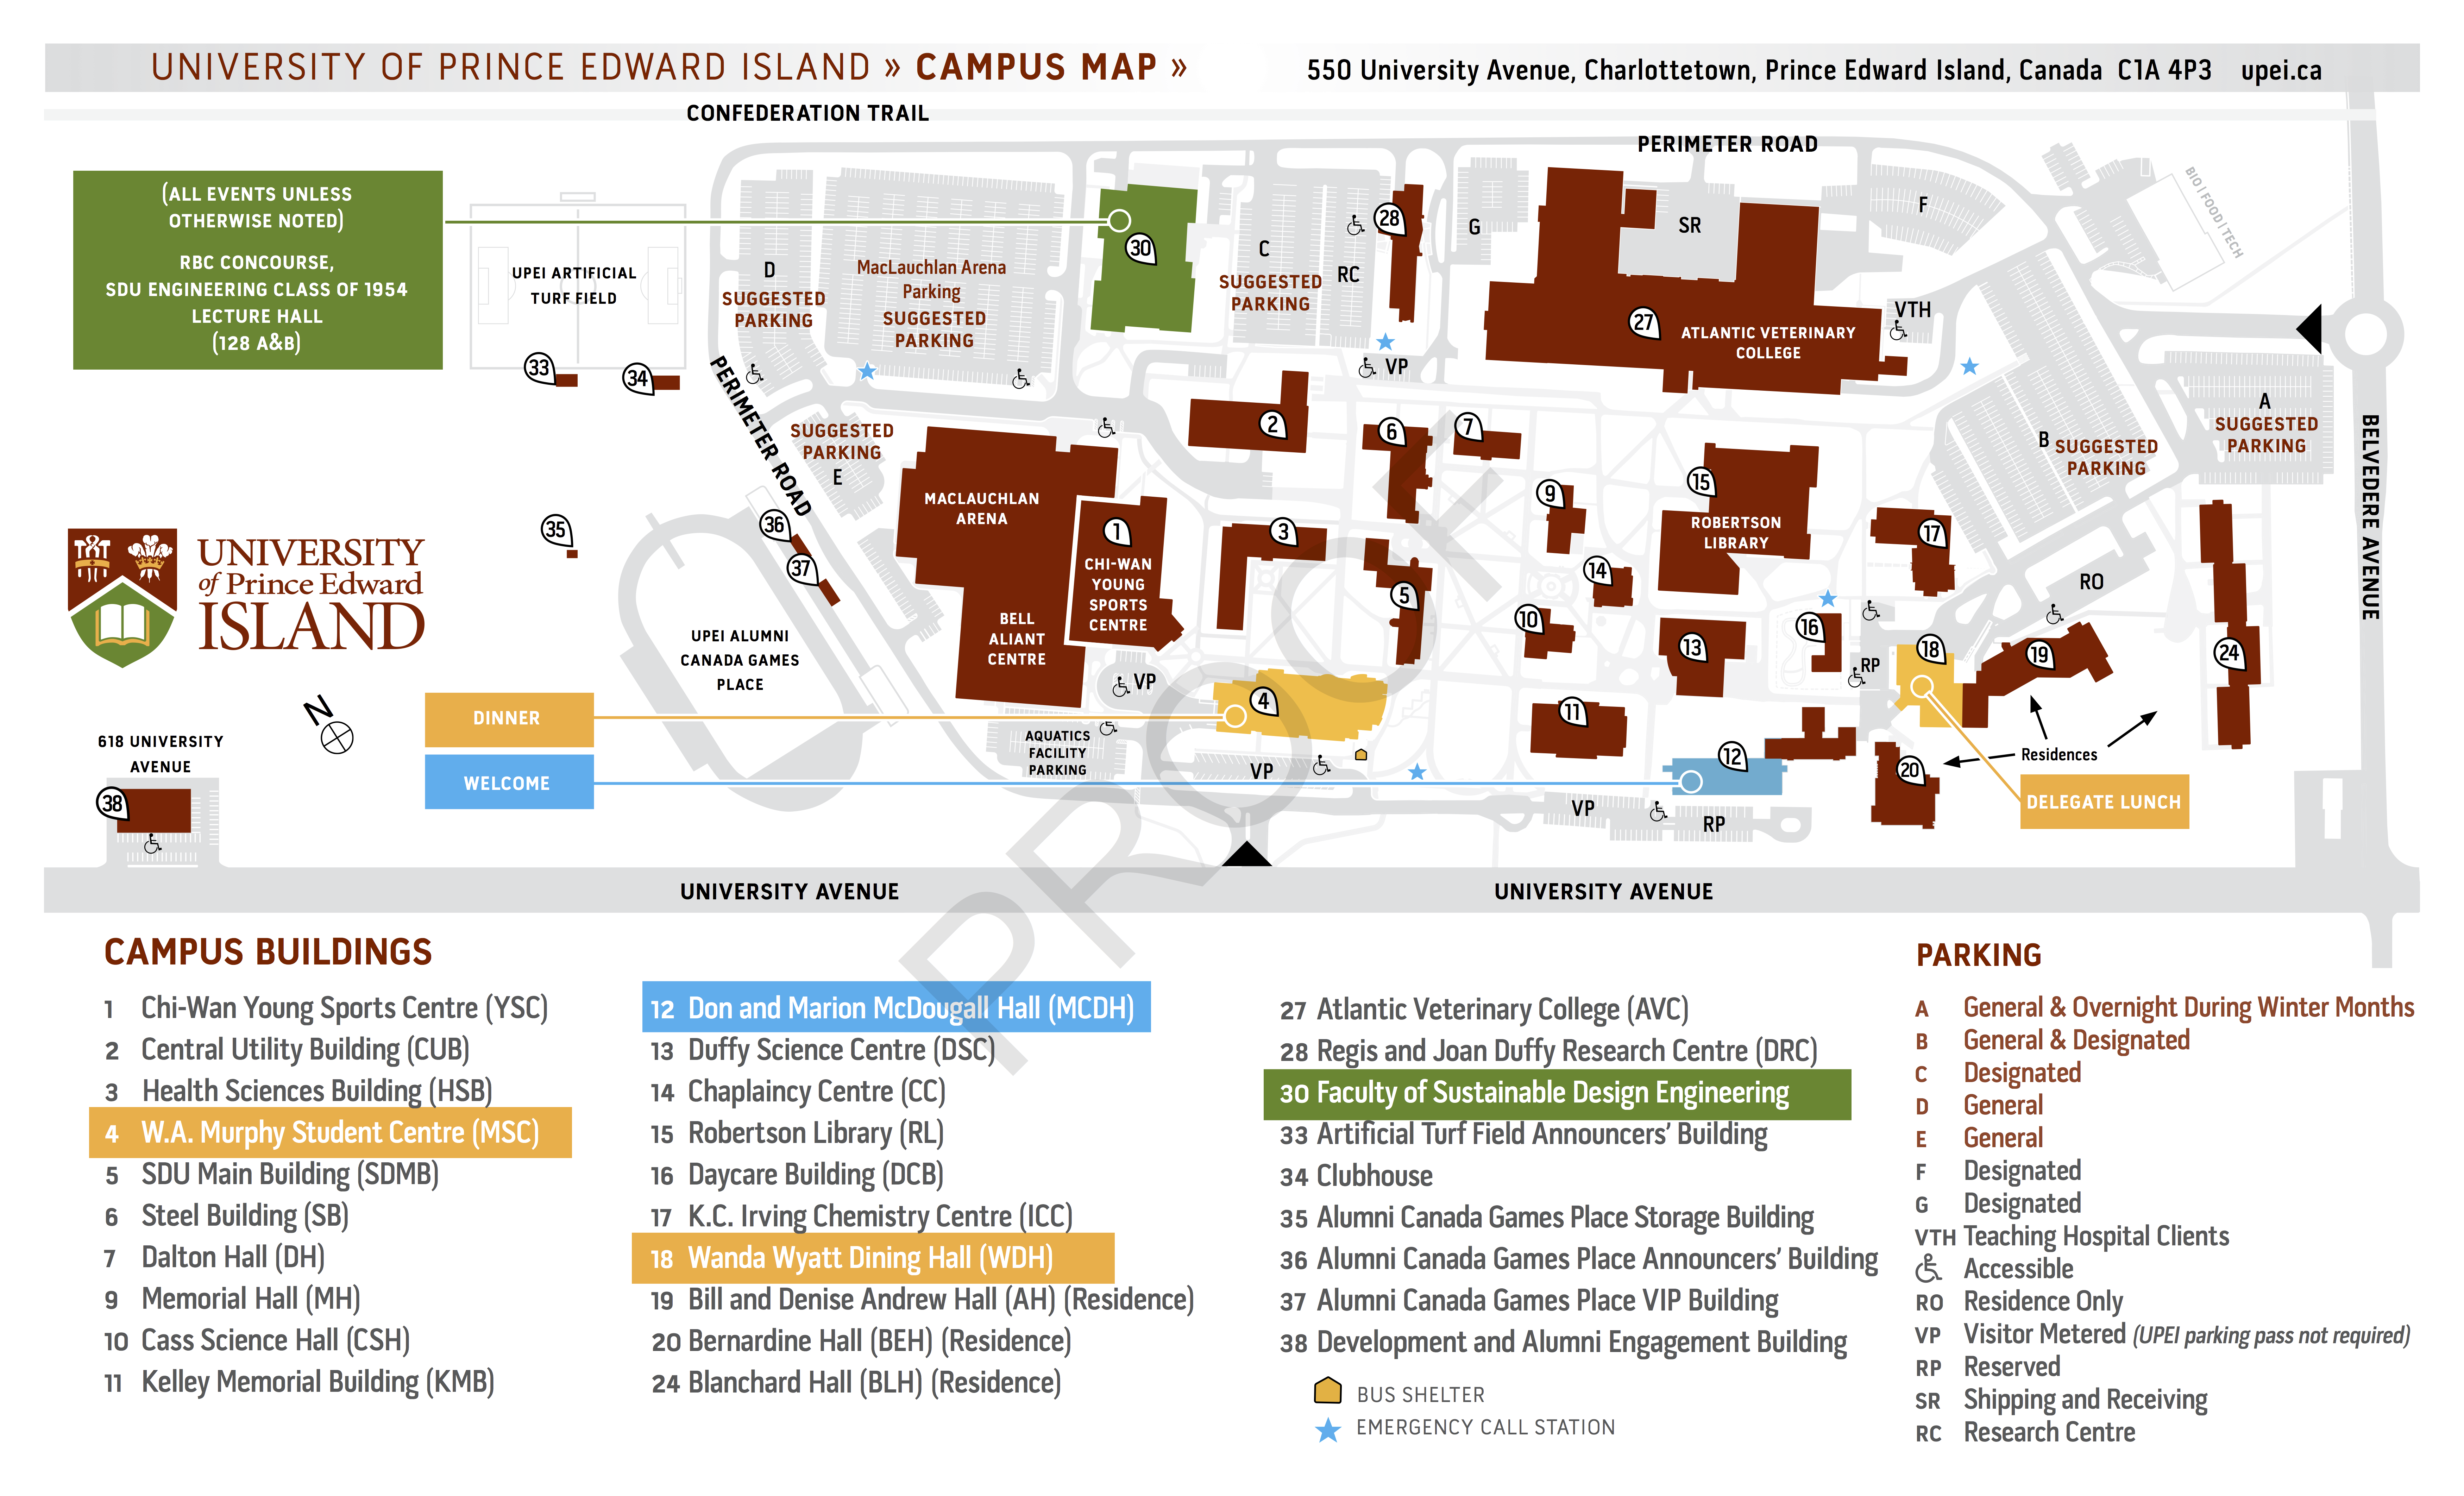 Map of UPEI campus with conference buildings indicated.